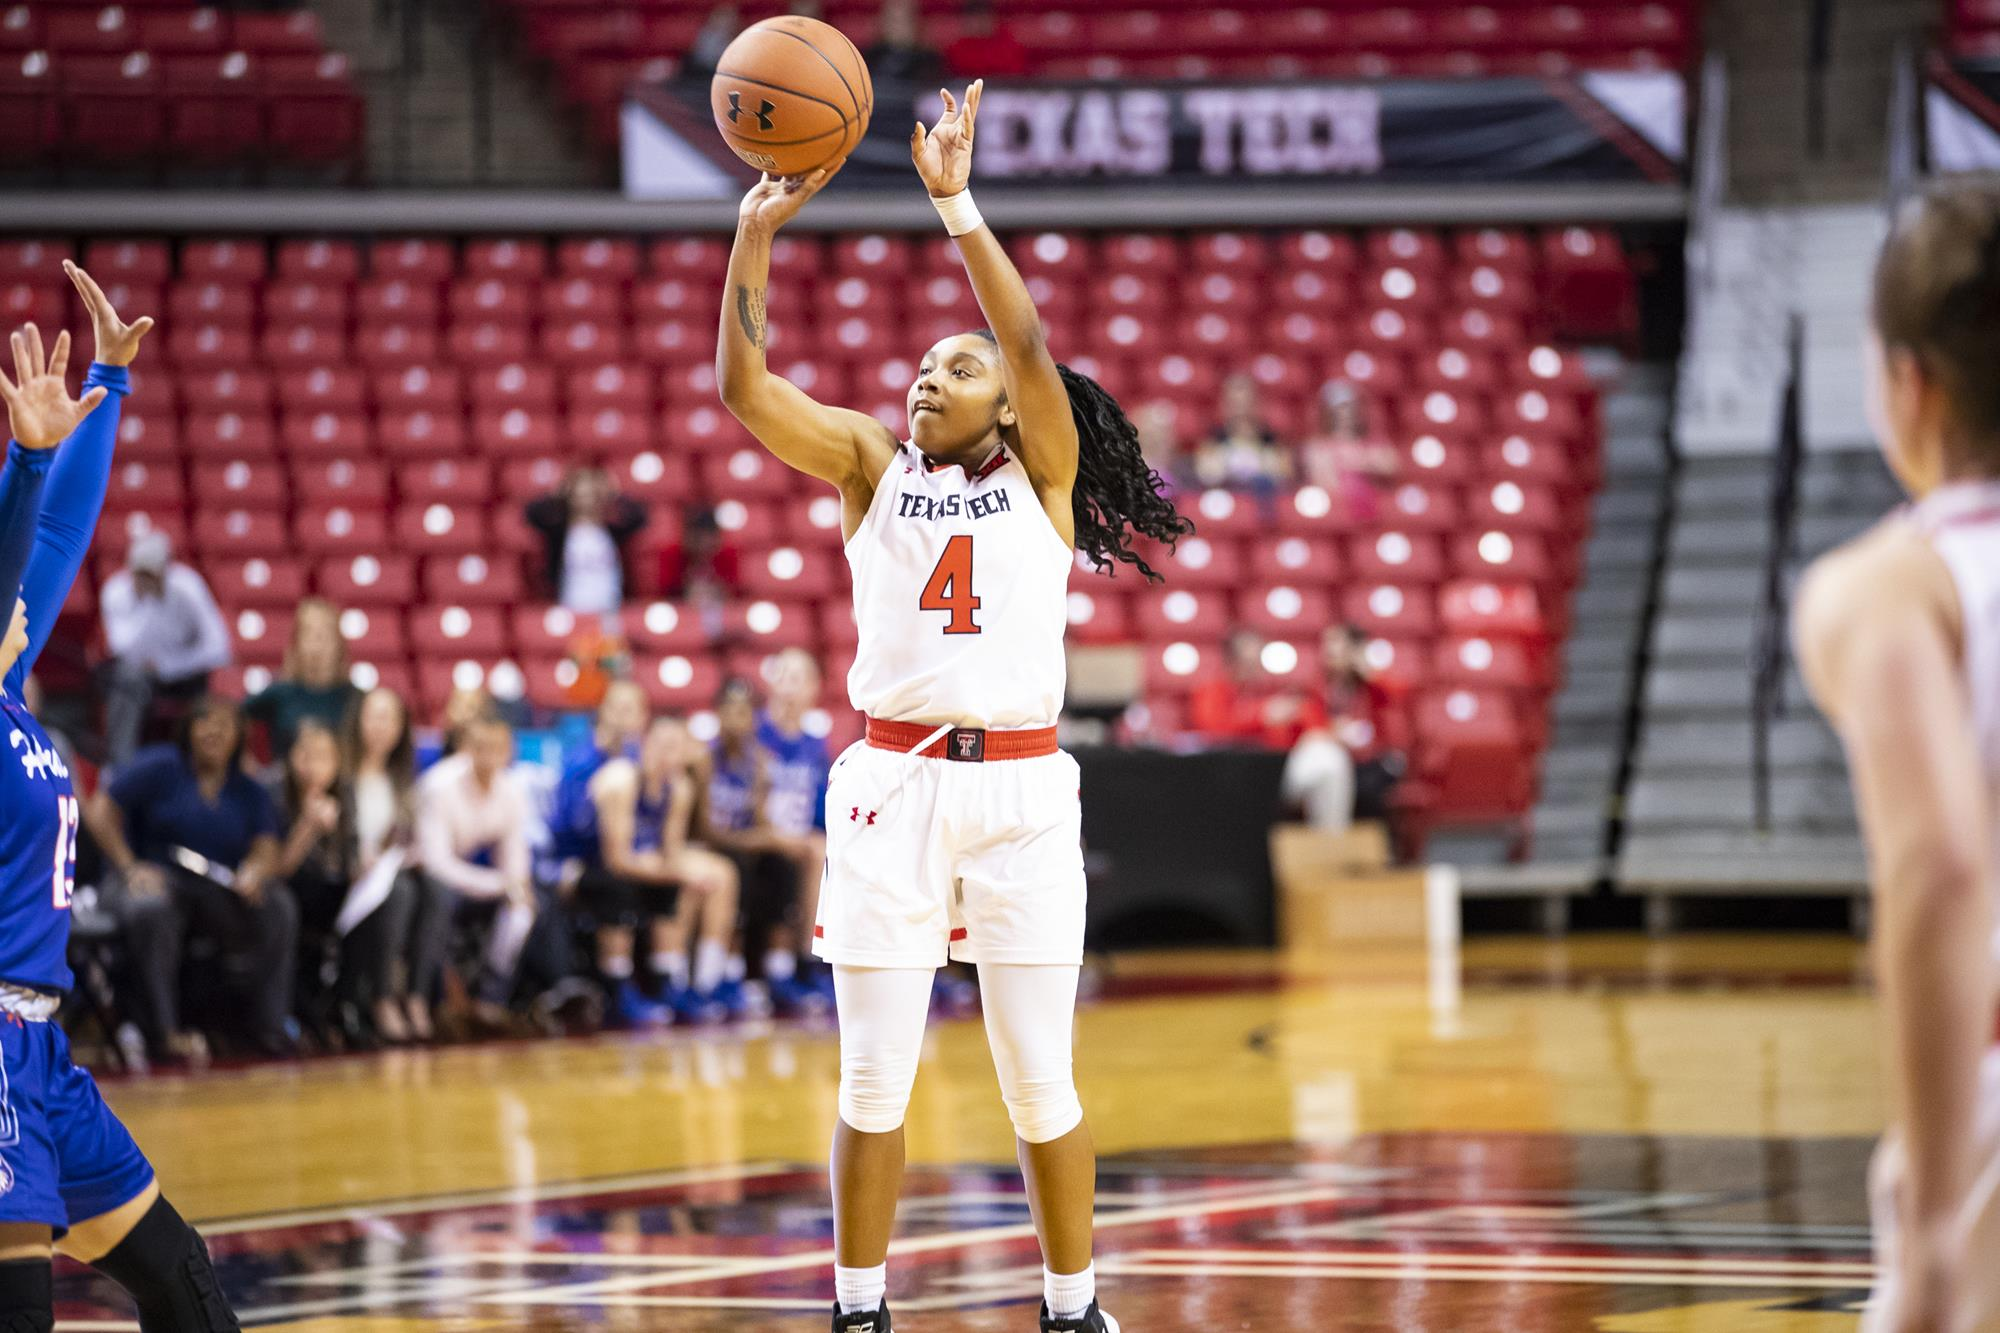 women's basketball - texas tech university athletics